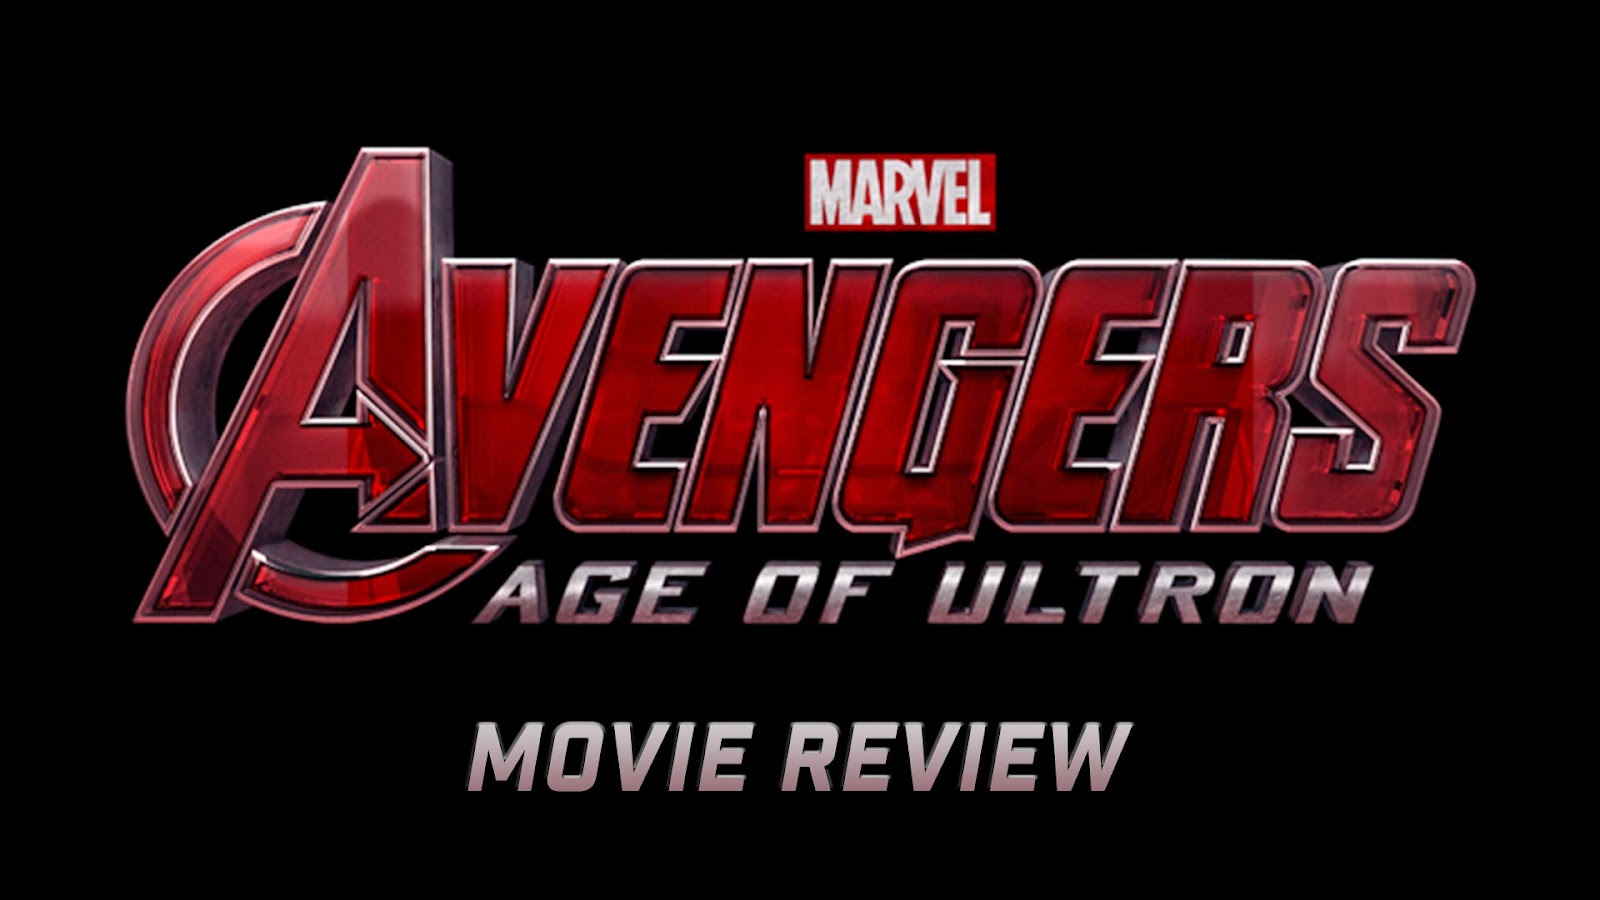 movie review Avengers: Age of Ultron podcast